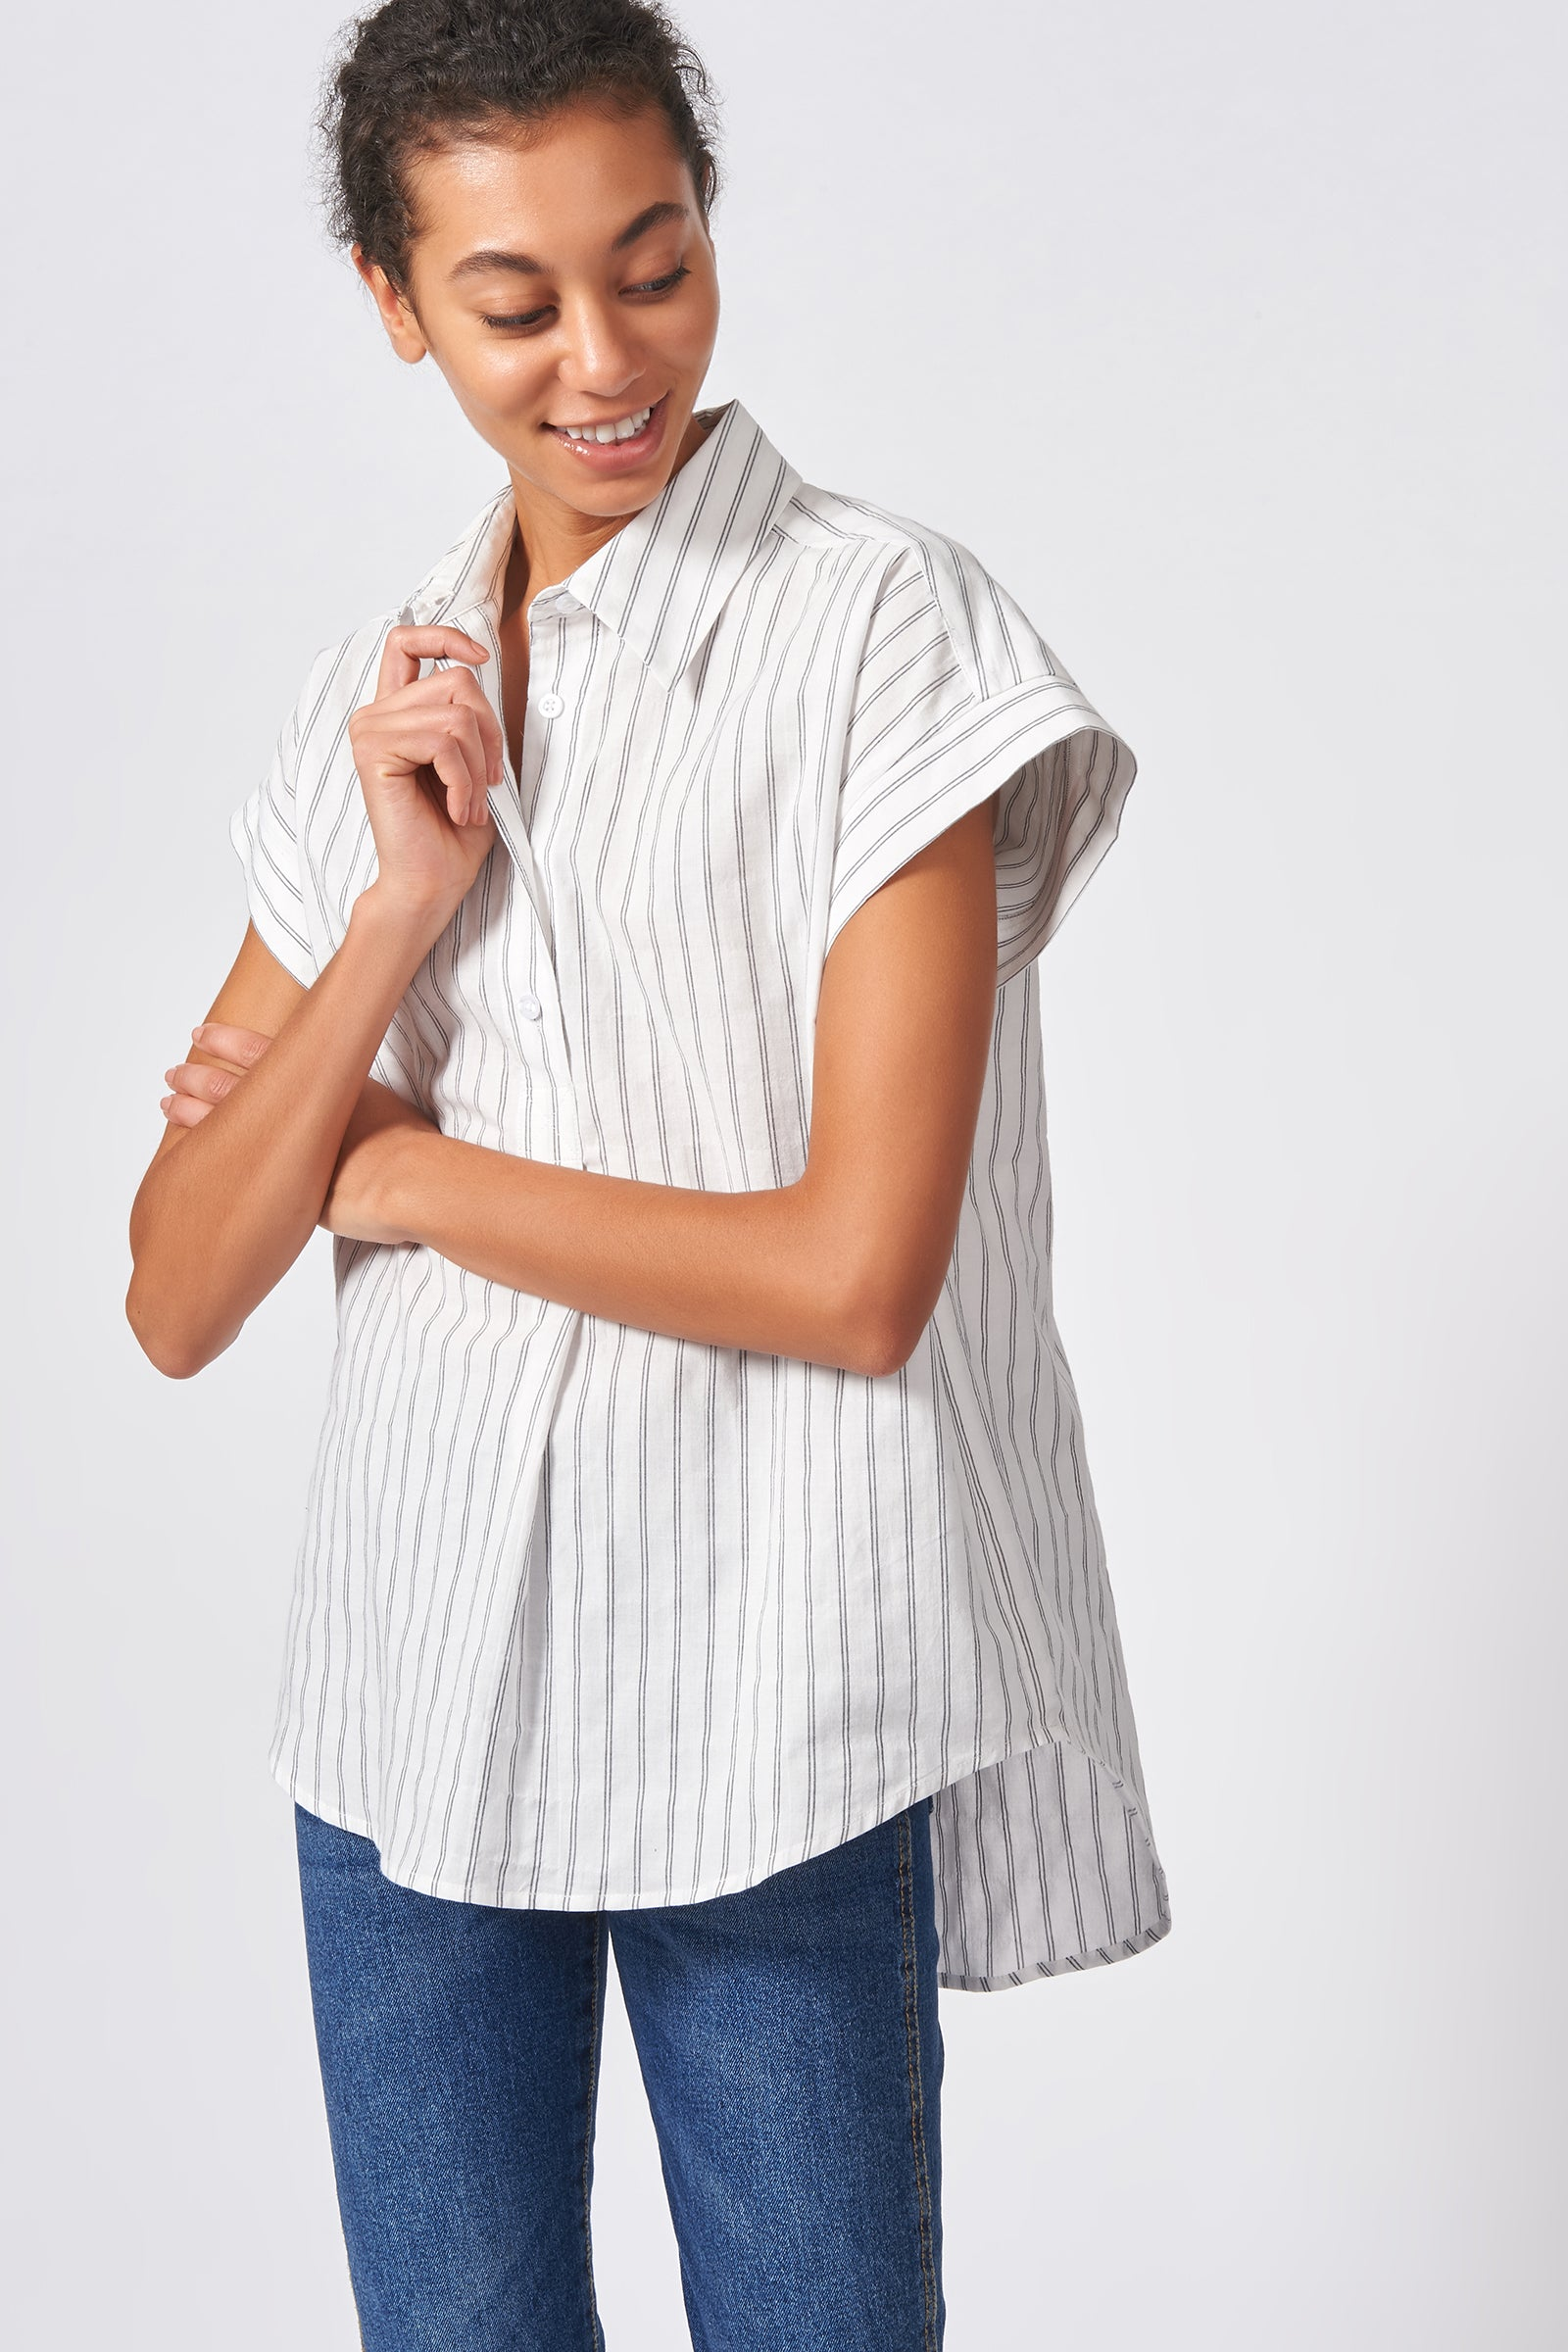 Kal Rieman Shirred Back Collared Top in Black Stripe on Model Close-up View